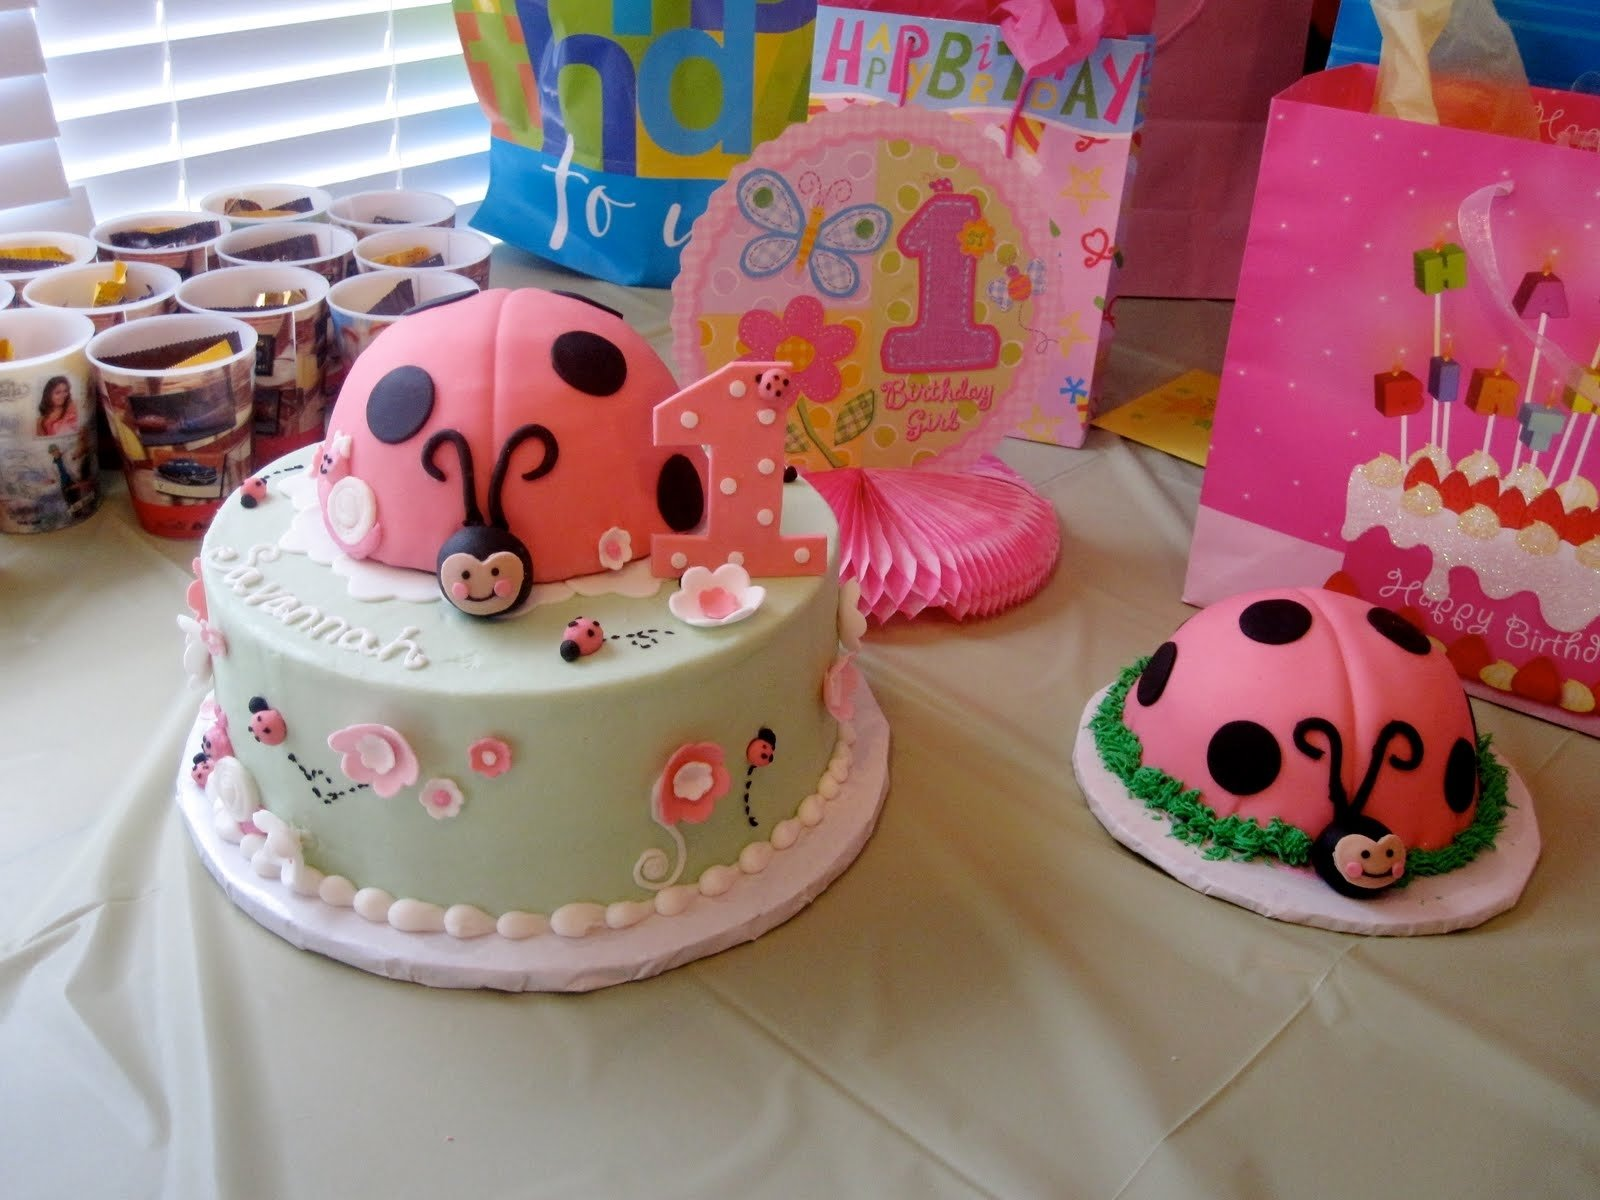 10 Cute One Year Old Birthday Ideas first year birthday party ideas for a girl tags 1st birthday party 3 2020